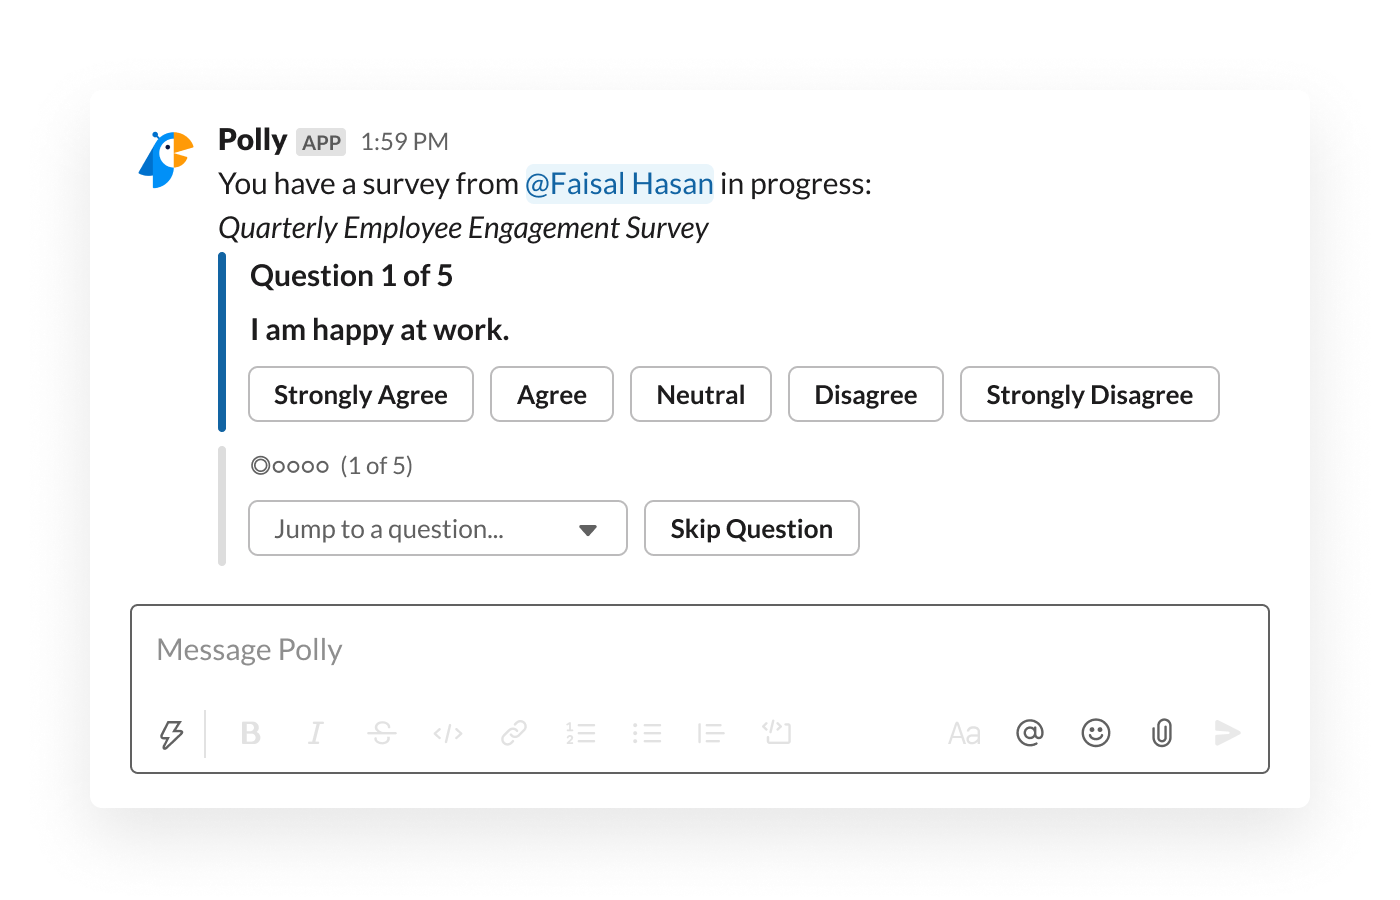 An employee engagement survey, shared in Slack, asks whether or not employees are happy at work